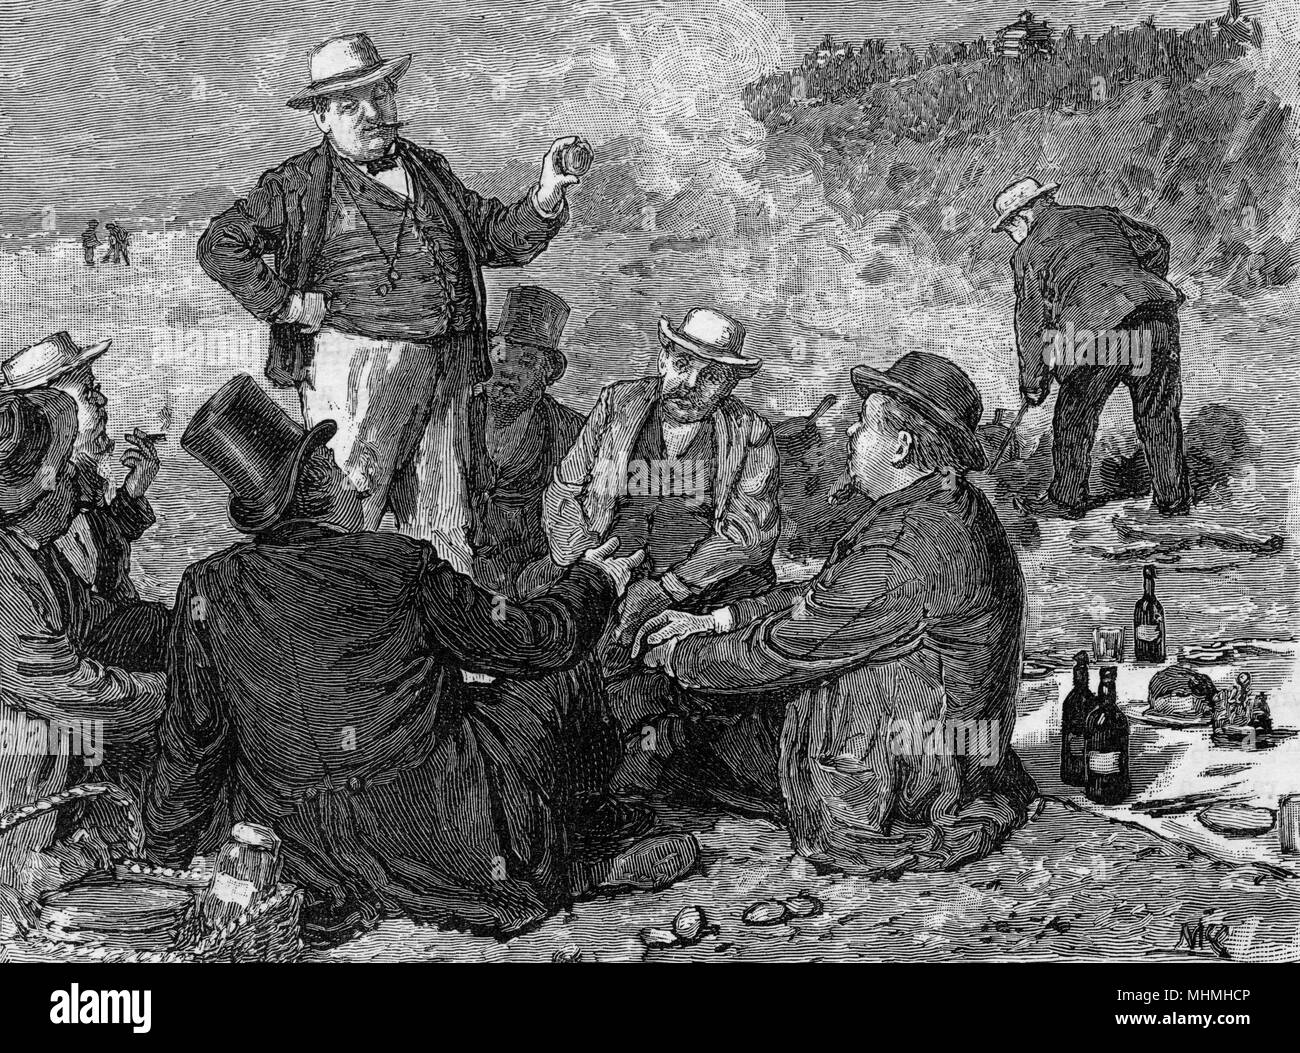 Gentlemen enjoy a clam bake on the coast of America       Date: 1883 - Stock Image